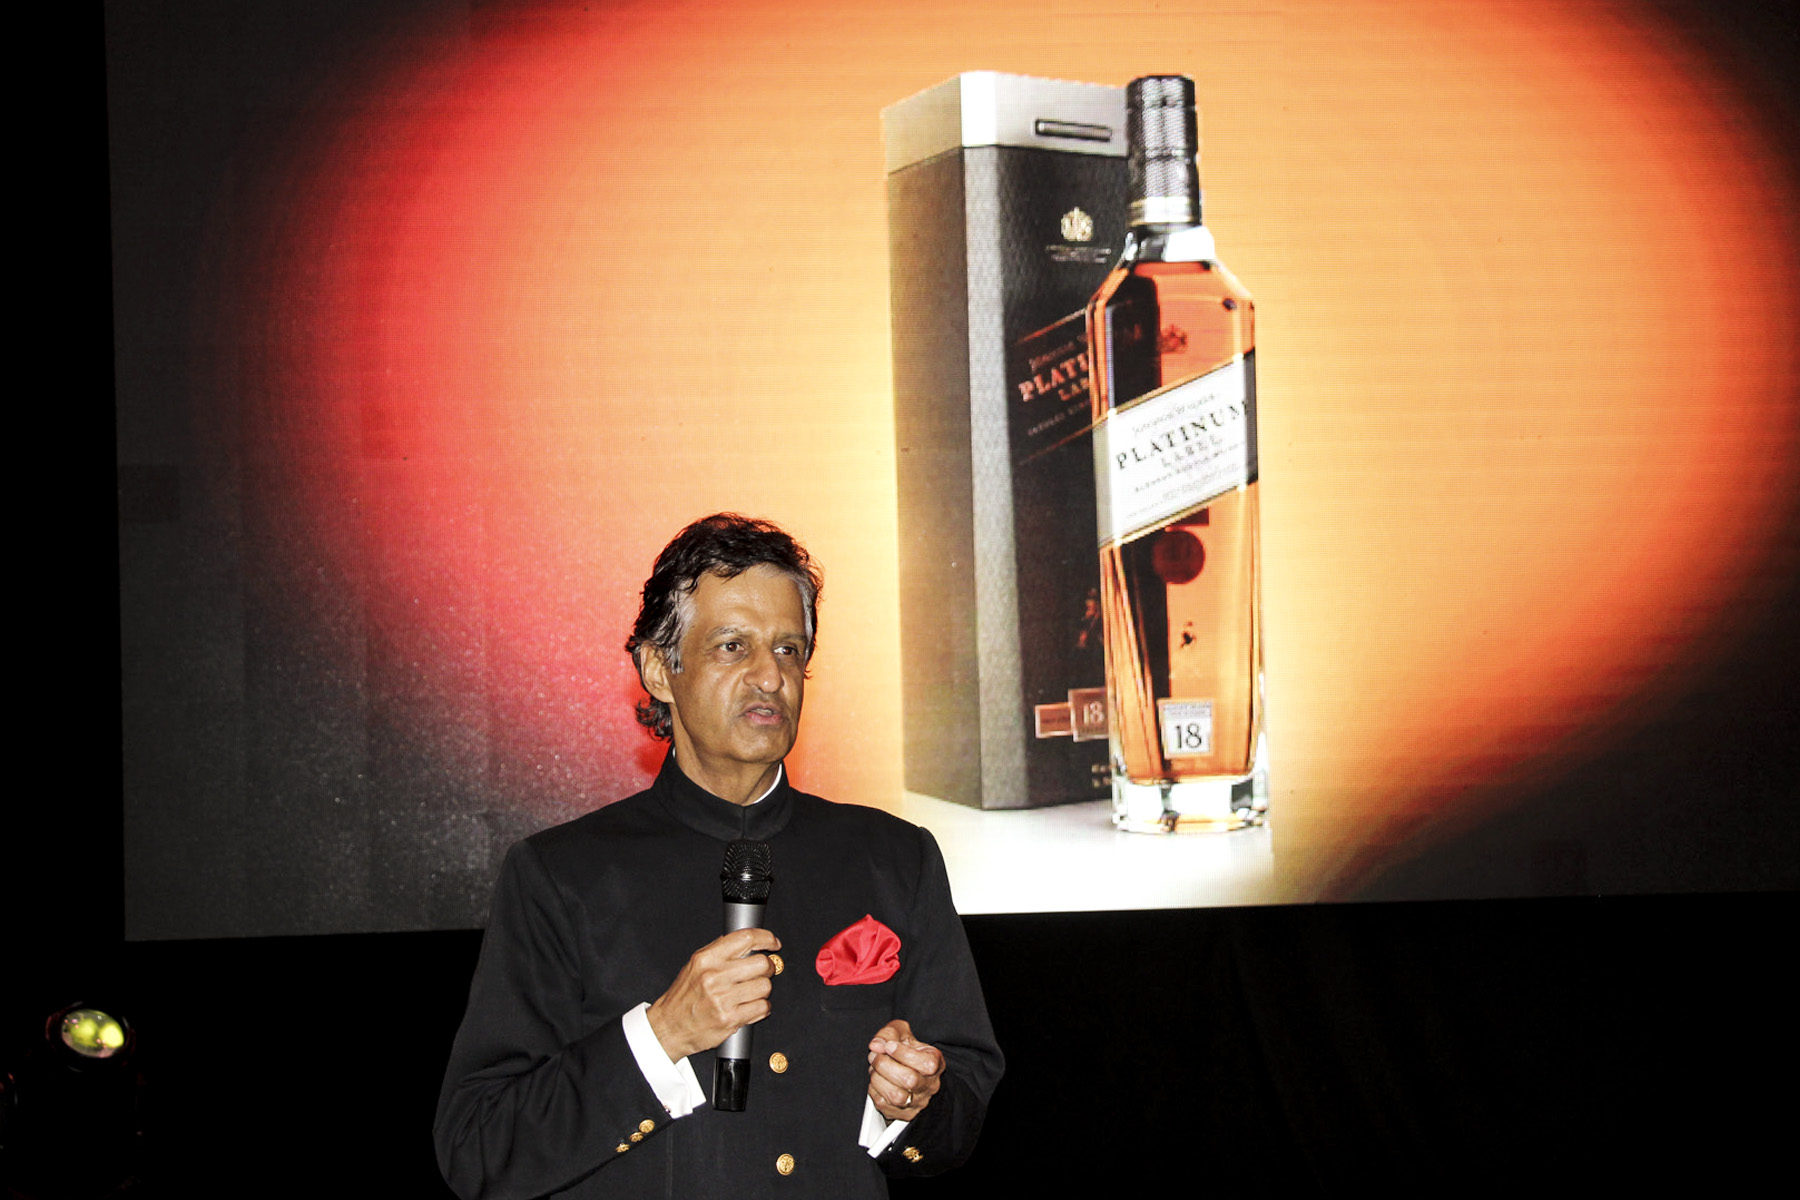 Kakira Nile Polo Club Chairman Mr. Nitin Madhvani speaks at the fundraising dinner, one of the highlights of the event.